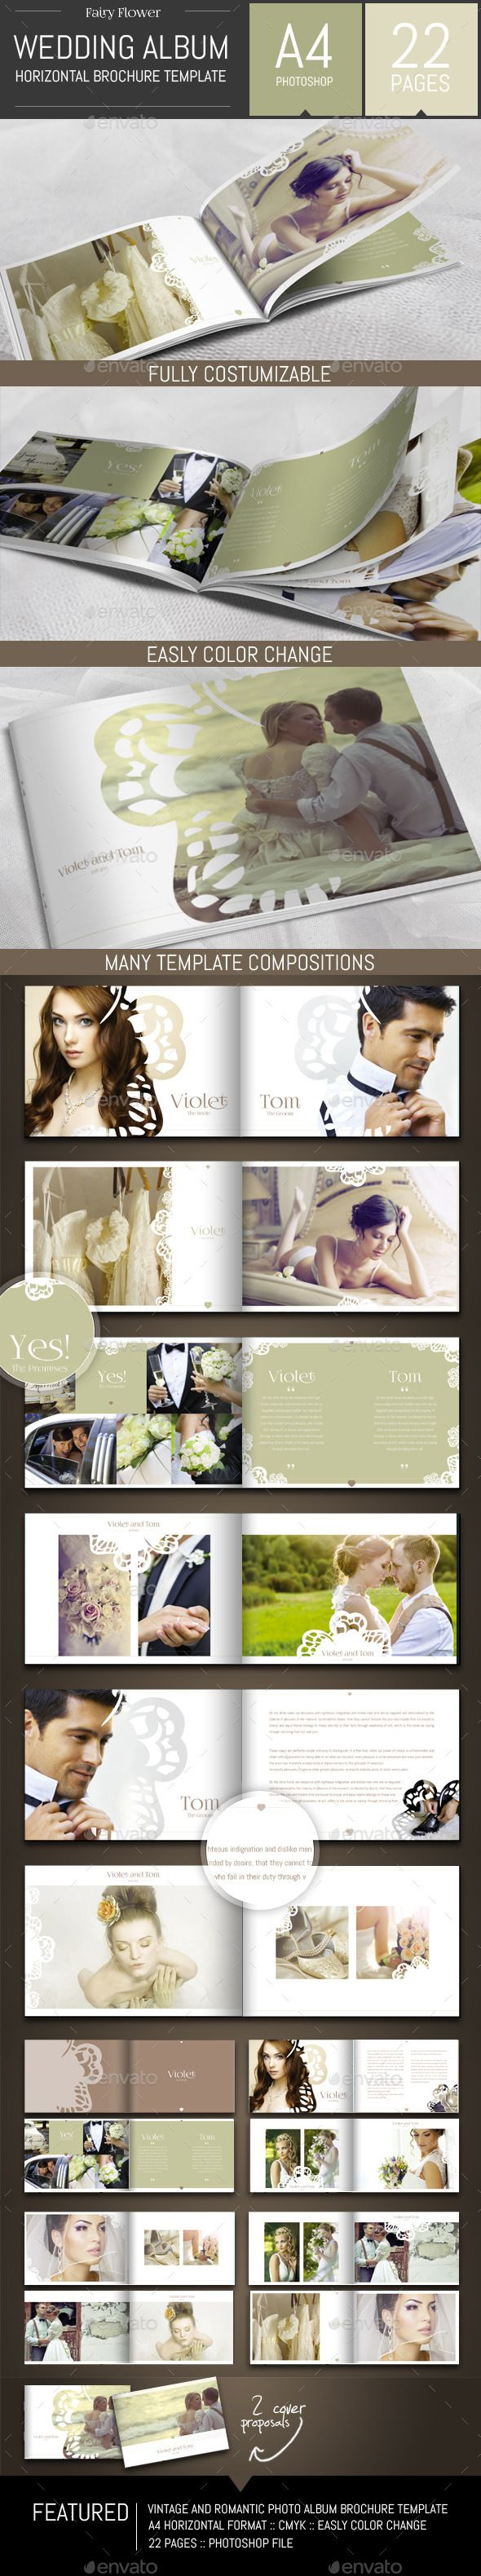 15 best album templates images on pinterest wedding pics wedding photo album horizontal brochure template pronofoot35fo Gallery